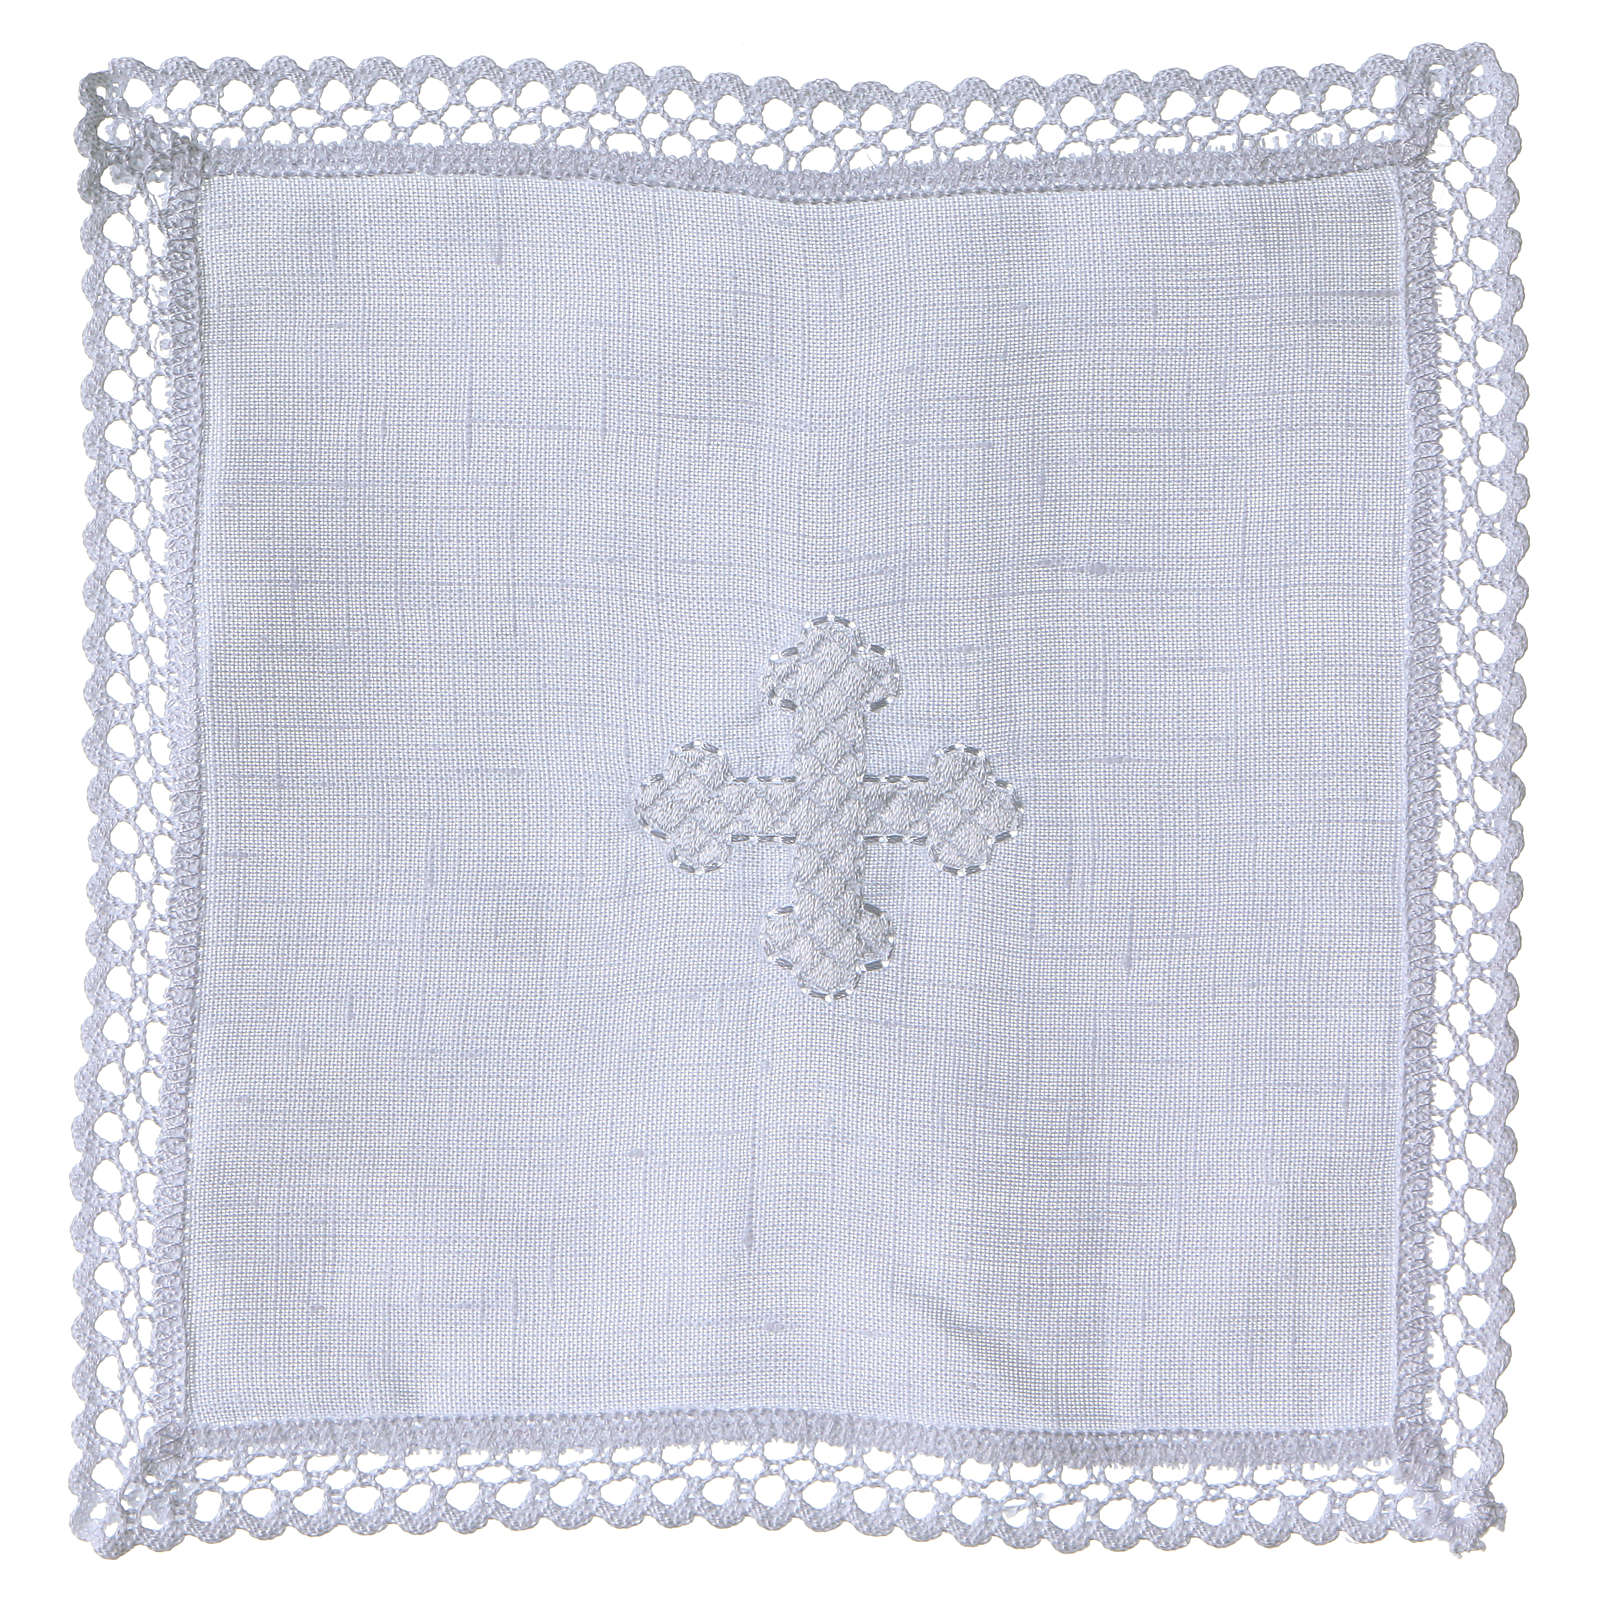 Altar linens with white cross 4